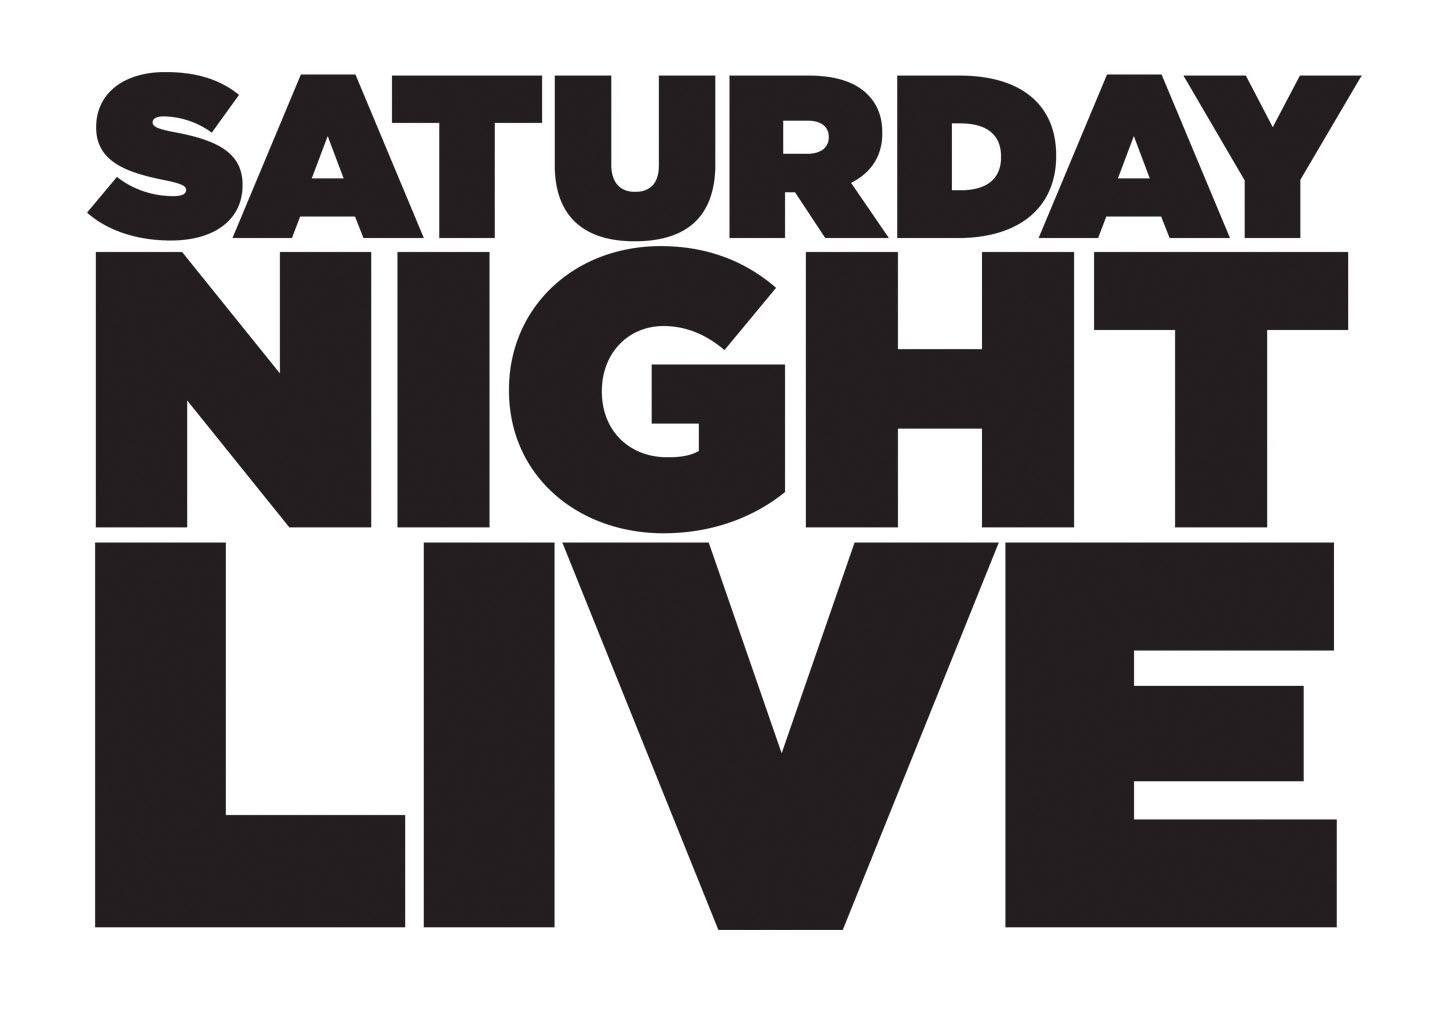 'Saturday Night Live' Depicts Santorum, Huckabee, Gilmore ...